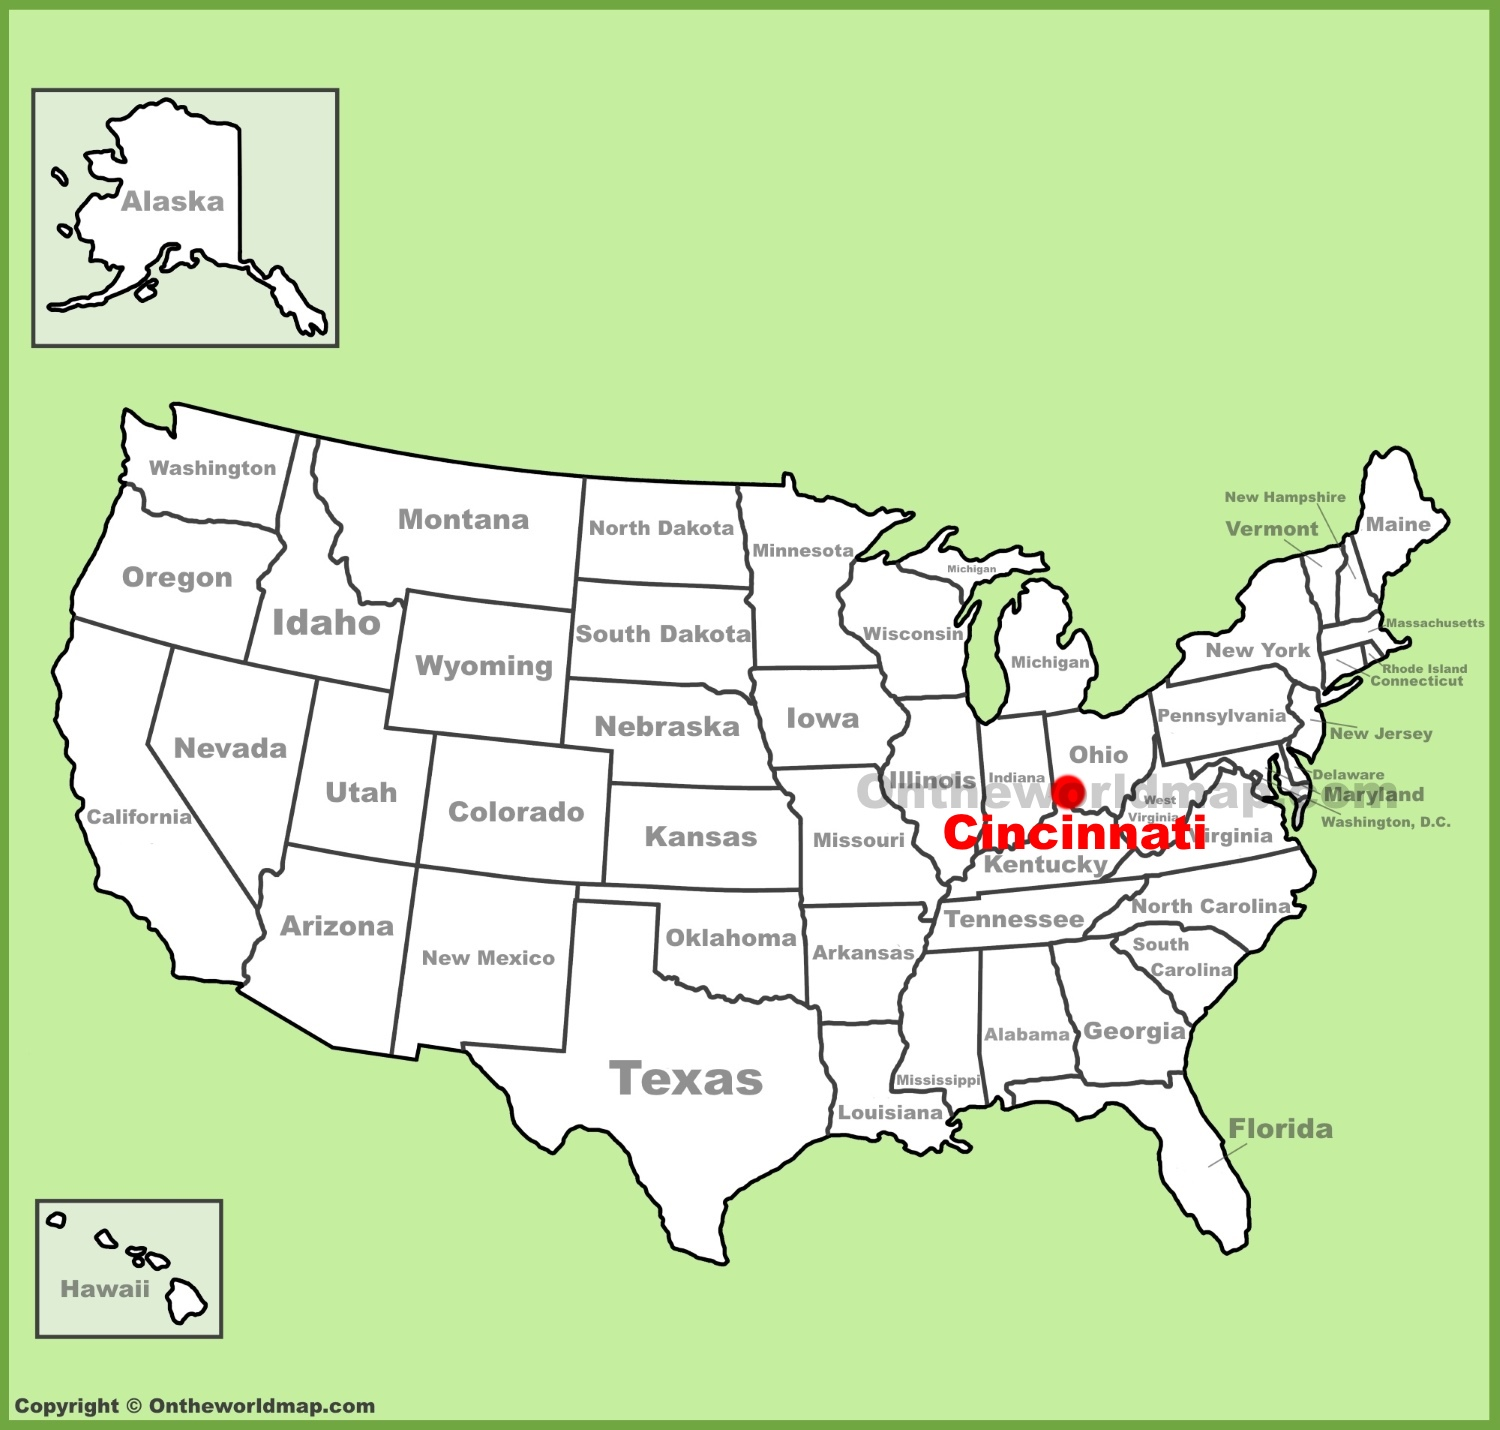 Cincinnati location on the U.S. Map